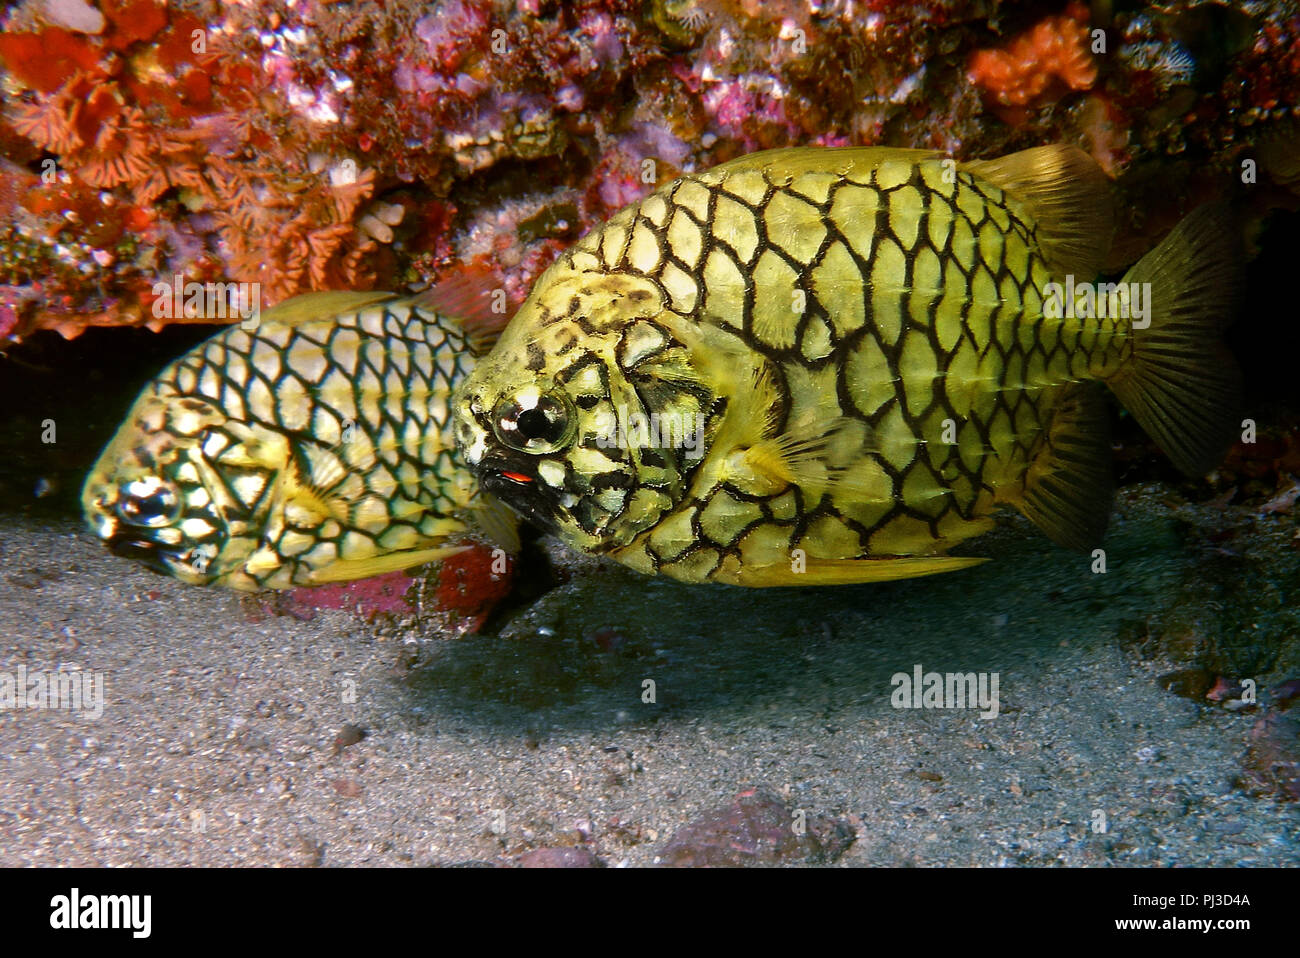 Pineapplefish, Cleidopus gloriamaris. The pineapplefish is a weak swimmer and a nocturnal species found inside caves and under rocky ledges during the - Stock Image